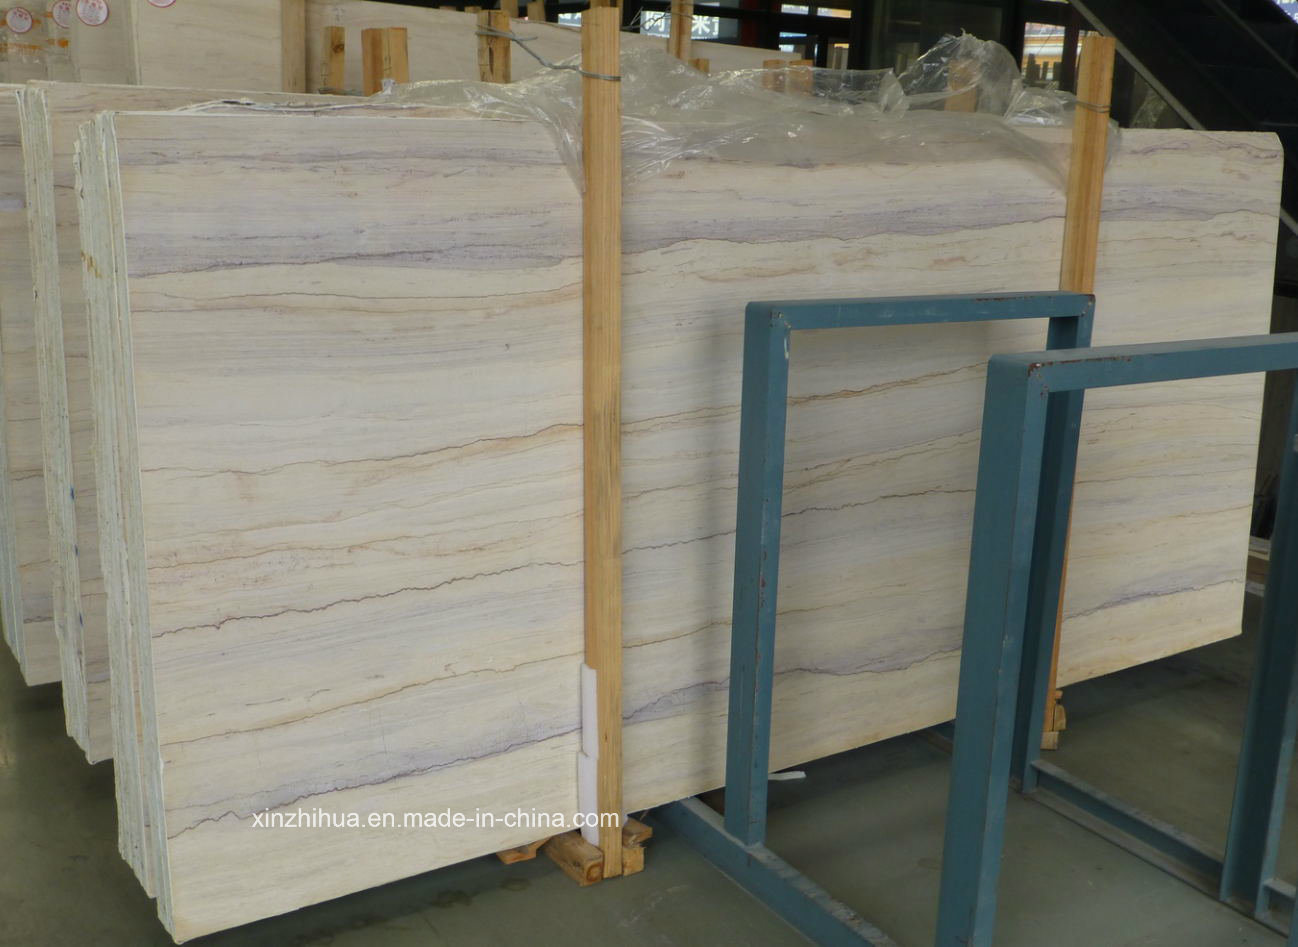 Gingko Timber Marble Beige Marble for Tiles/Countertops